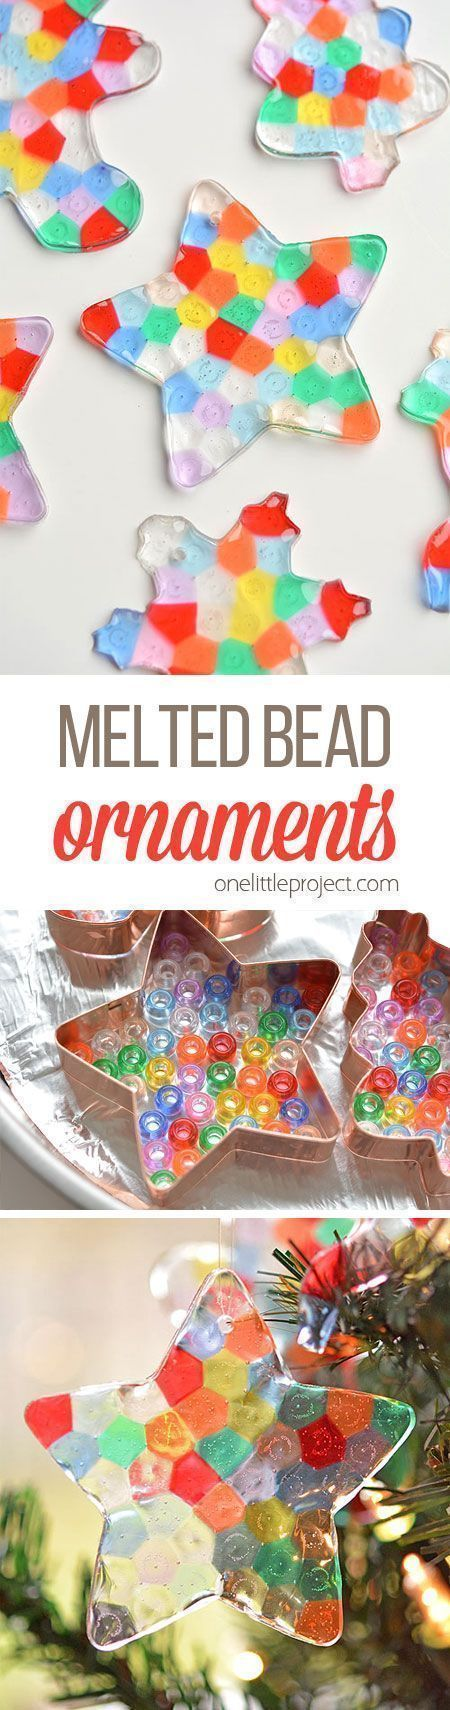 These melted bead ornaments are SO BEAUTIFUL! And they're so easy to make with pony beads! You can hang them on the Christmas tree, or use suction cup hooks on the window to turn them into sun catchers.